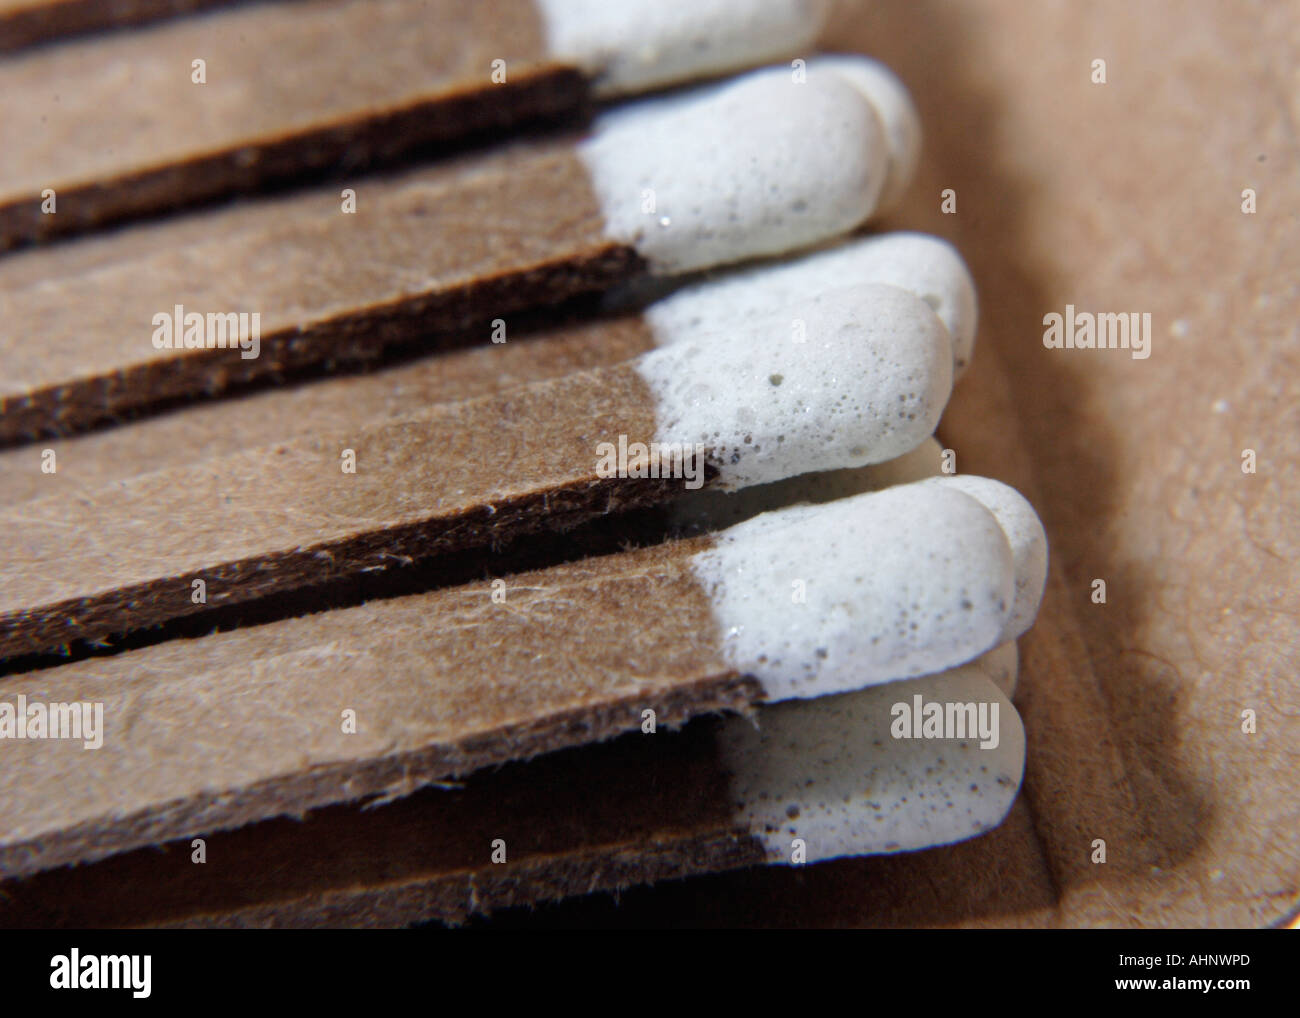 Closeup of matches in matchbook - Stock Image